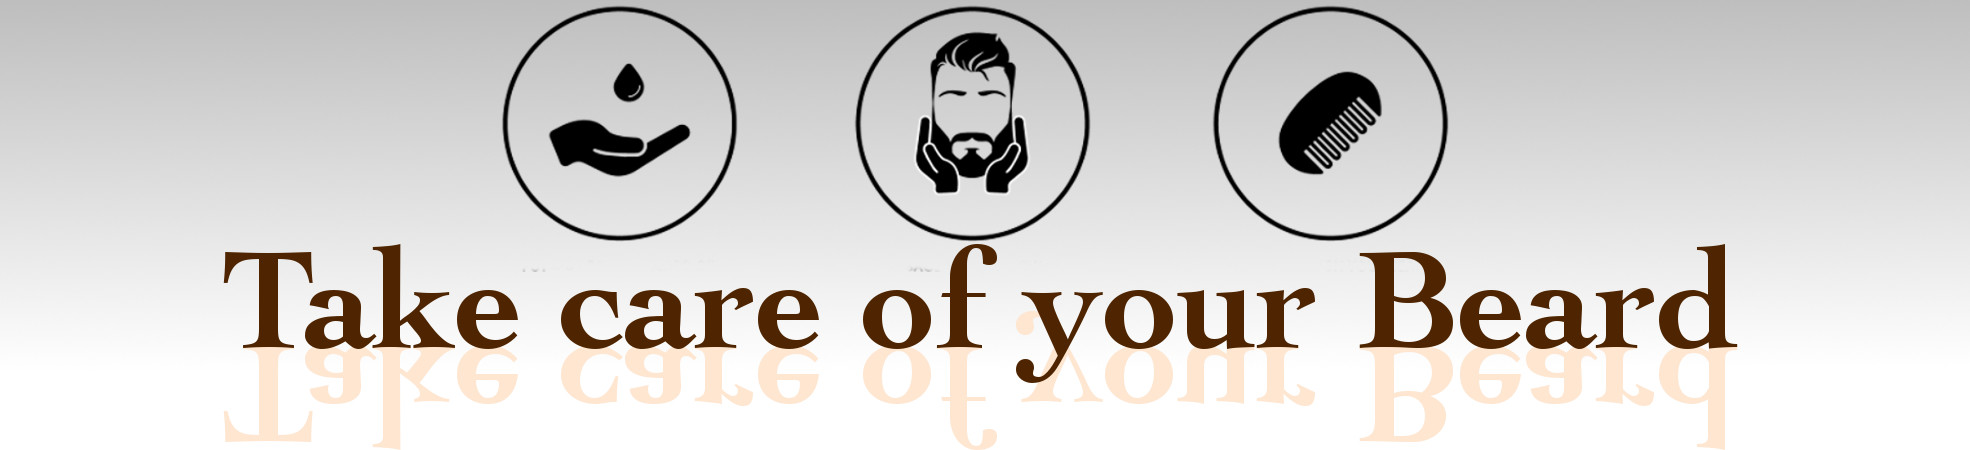 BeardStyle.ch, the shop for your beard